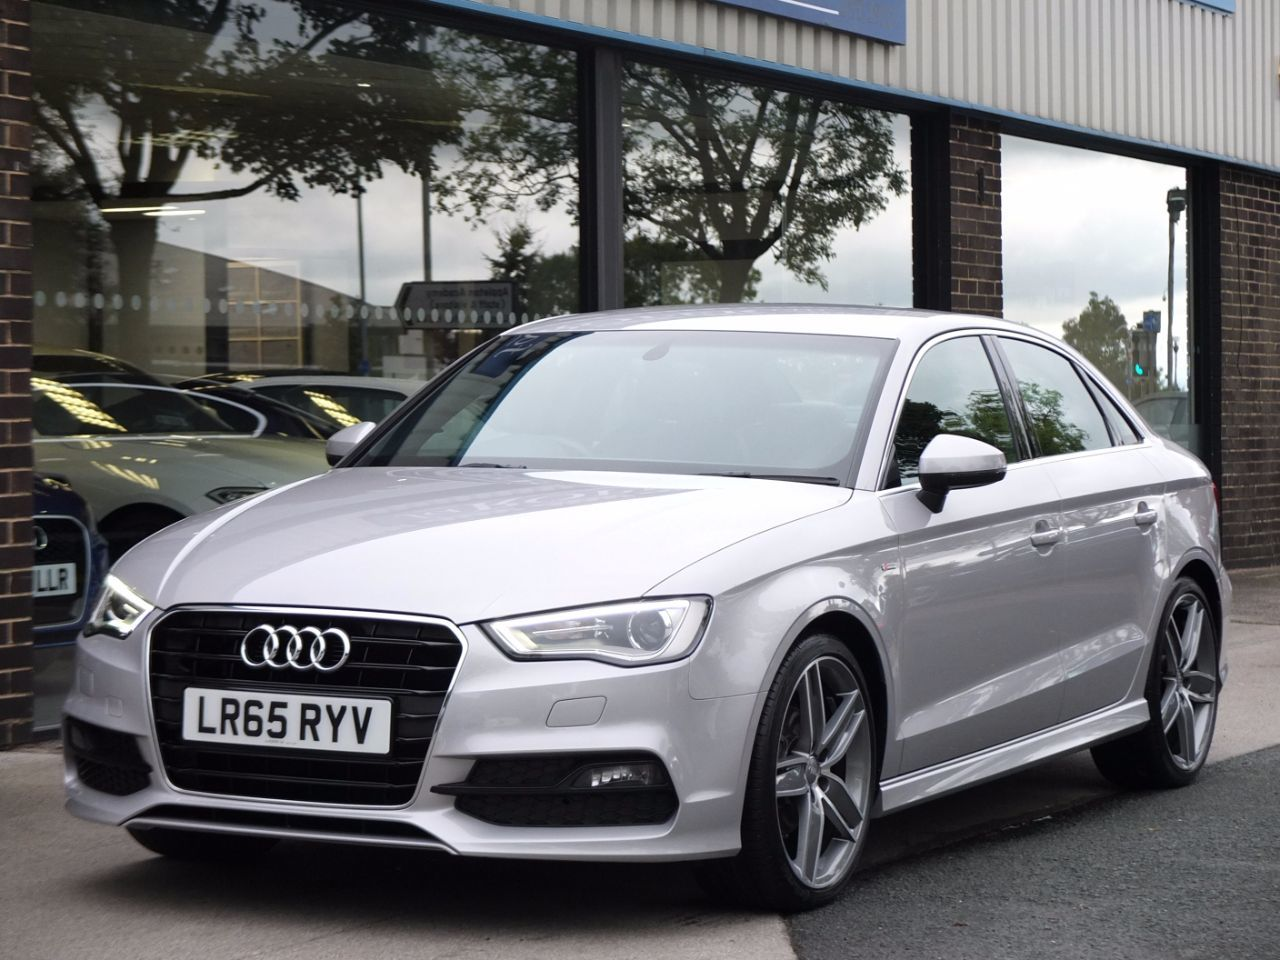 Audi A3 Saloon 1.4 TFSI S Line S tronic (Cylinder on Demand) Saloon Petrol Lotus Grey MetallicAudi A3 Saloon 1.4 TFSI S Line S tronic (Cylinder on Demand) Saloon Petrol Lotus Grey Metallic at fa Roper Ltd Bradford